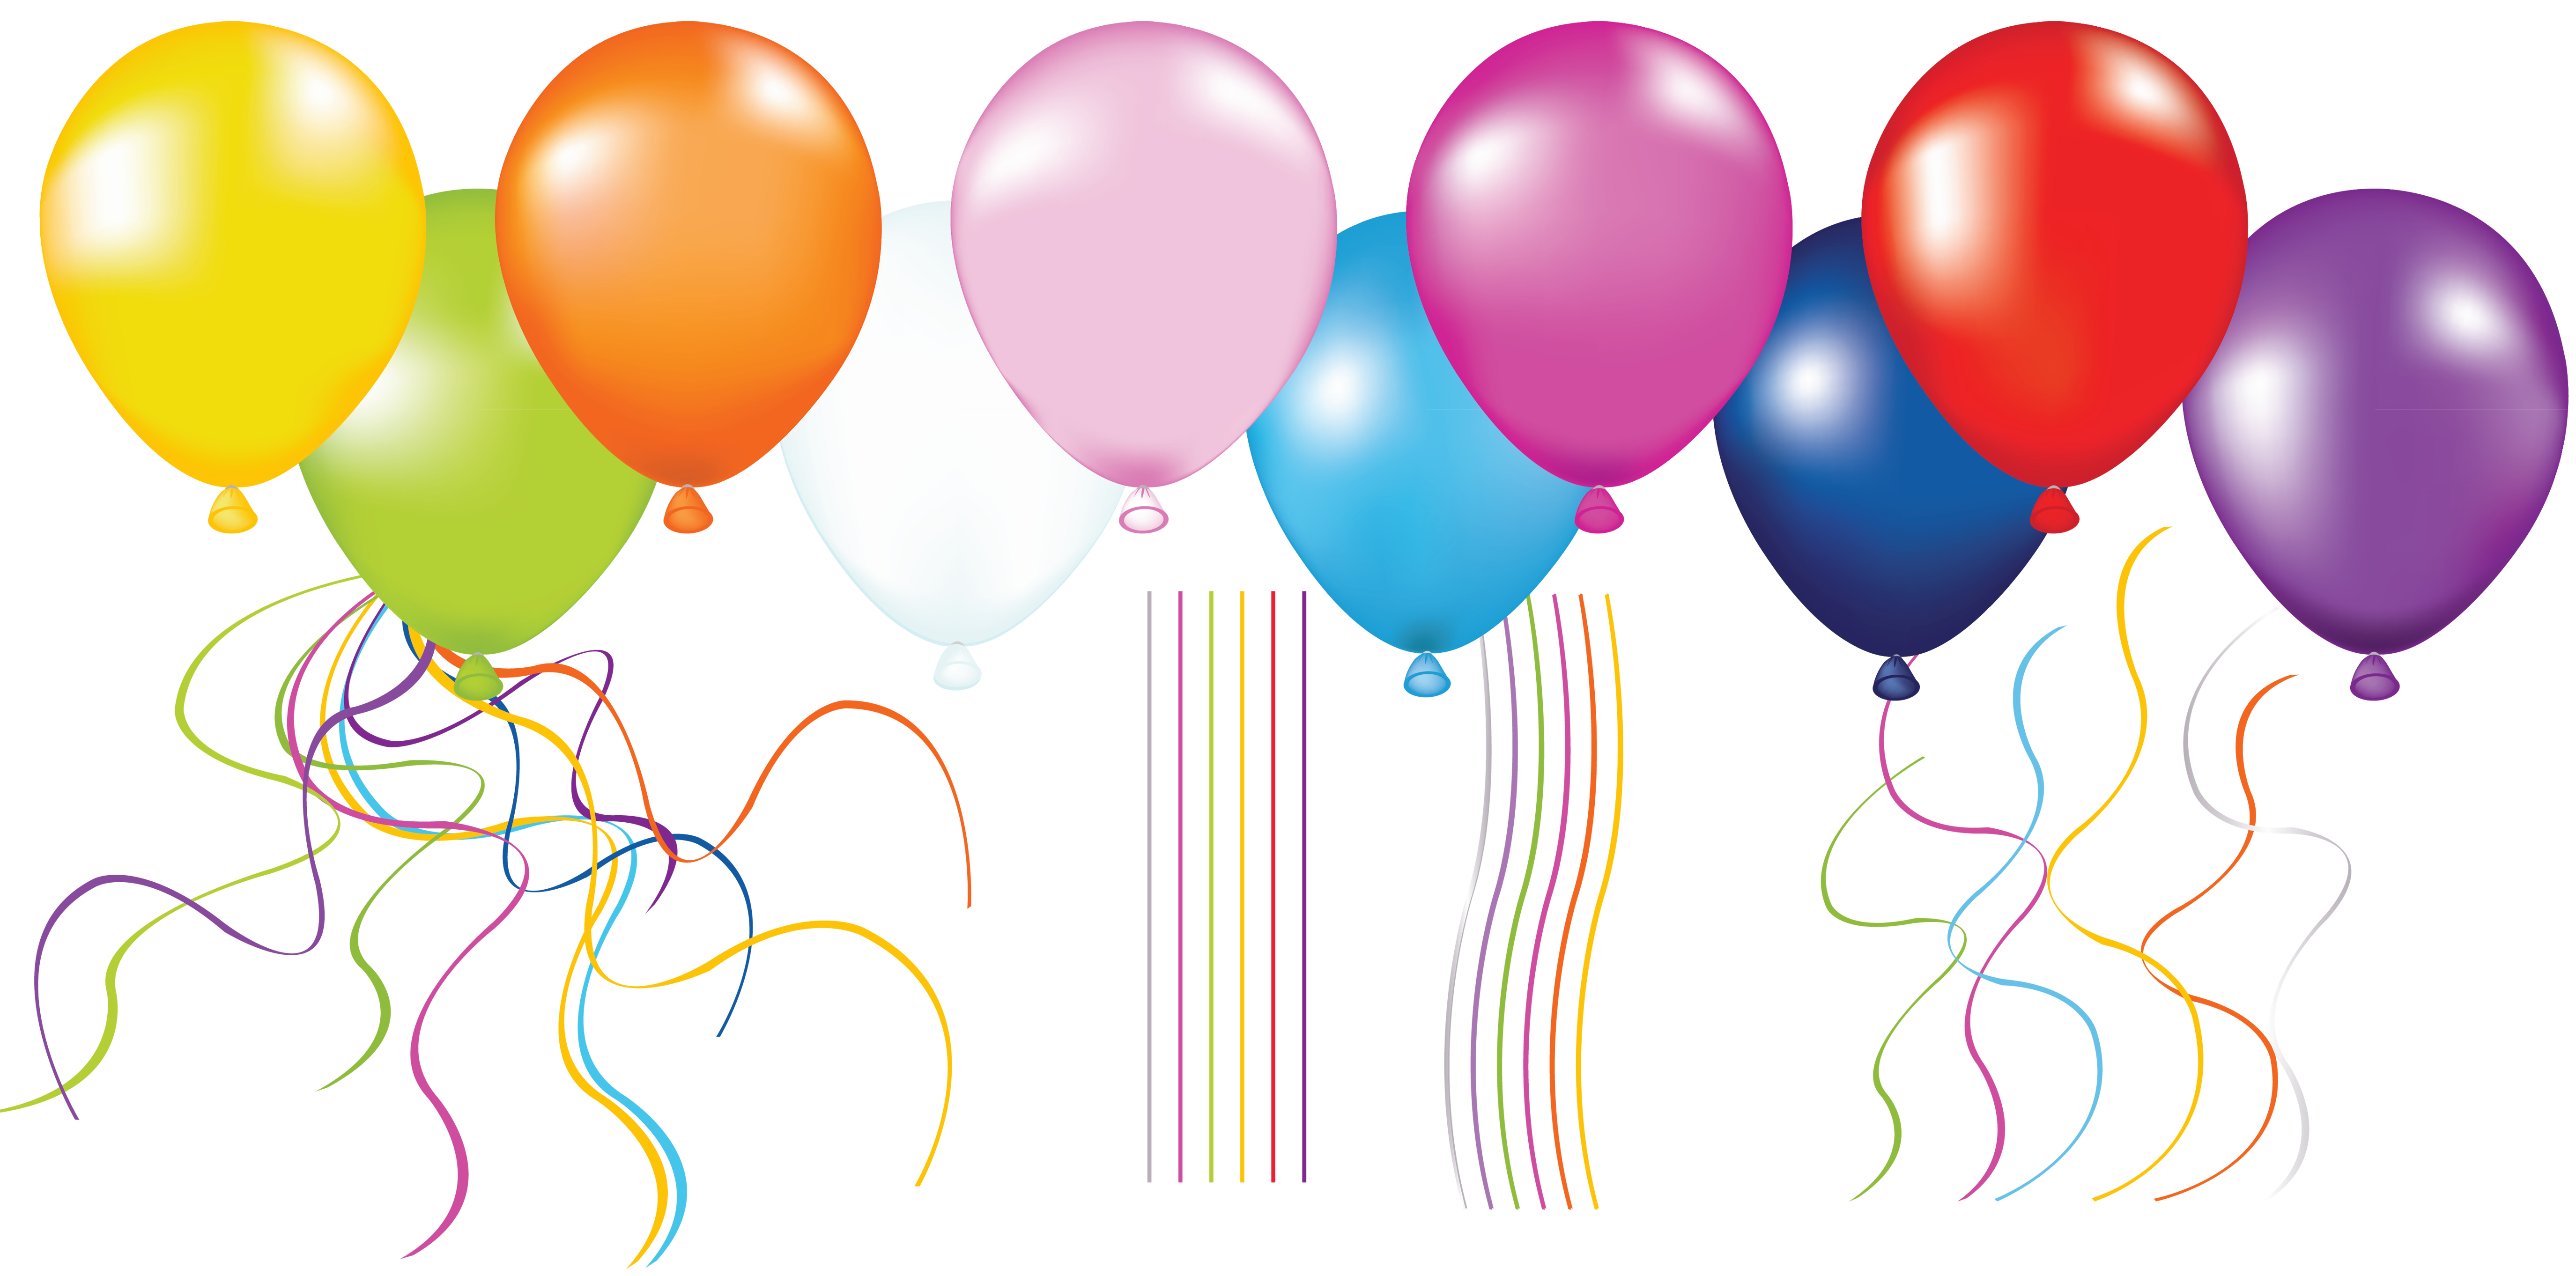 Clipart png transparent svg library library Large_Balloons_Transparent_Clipart.png?m=1380924000 svg library library